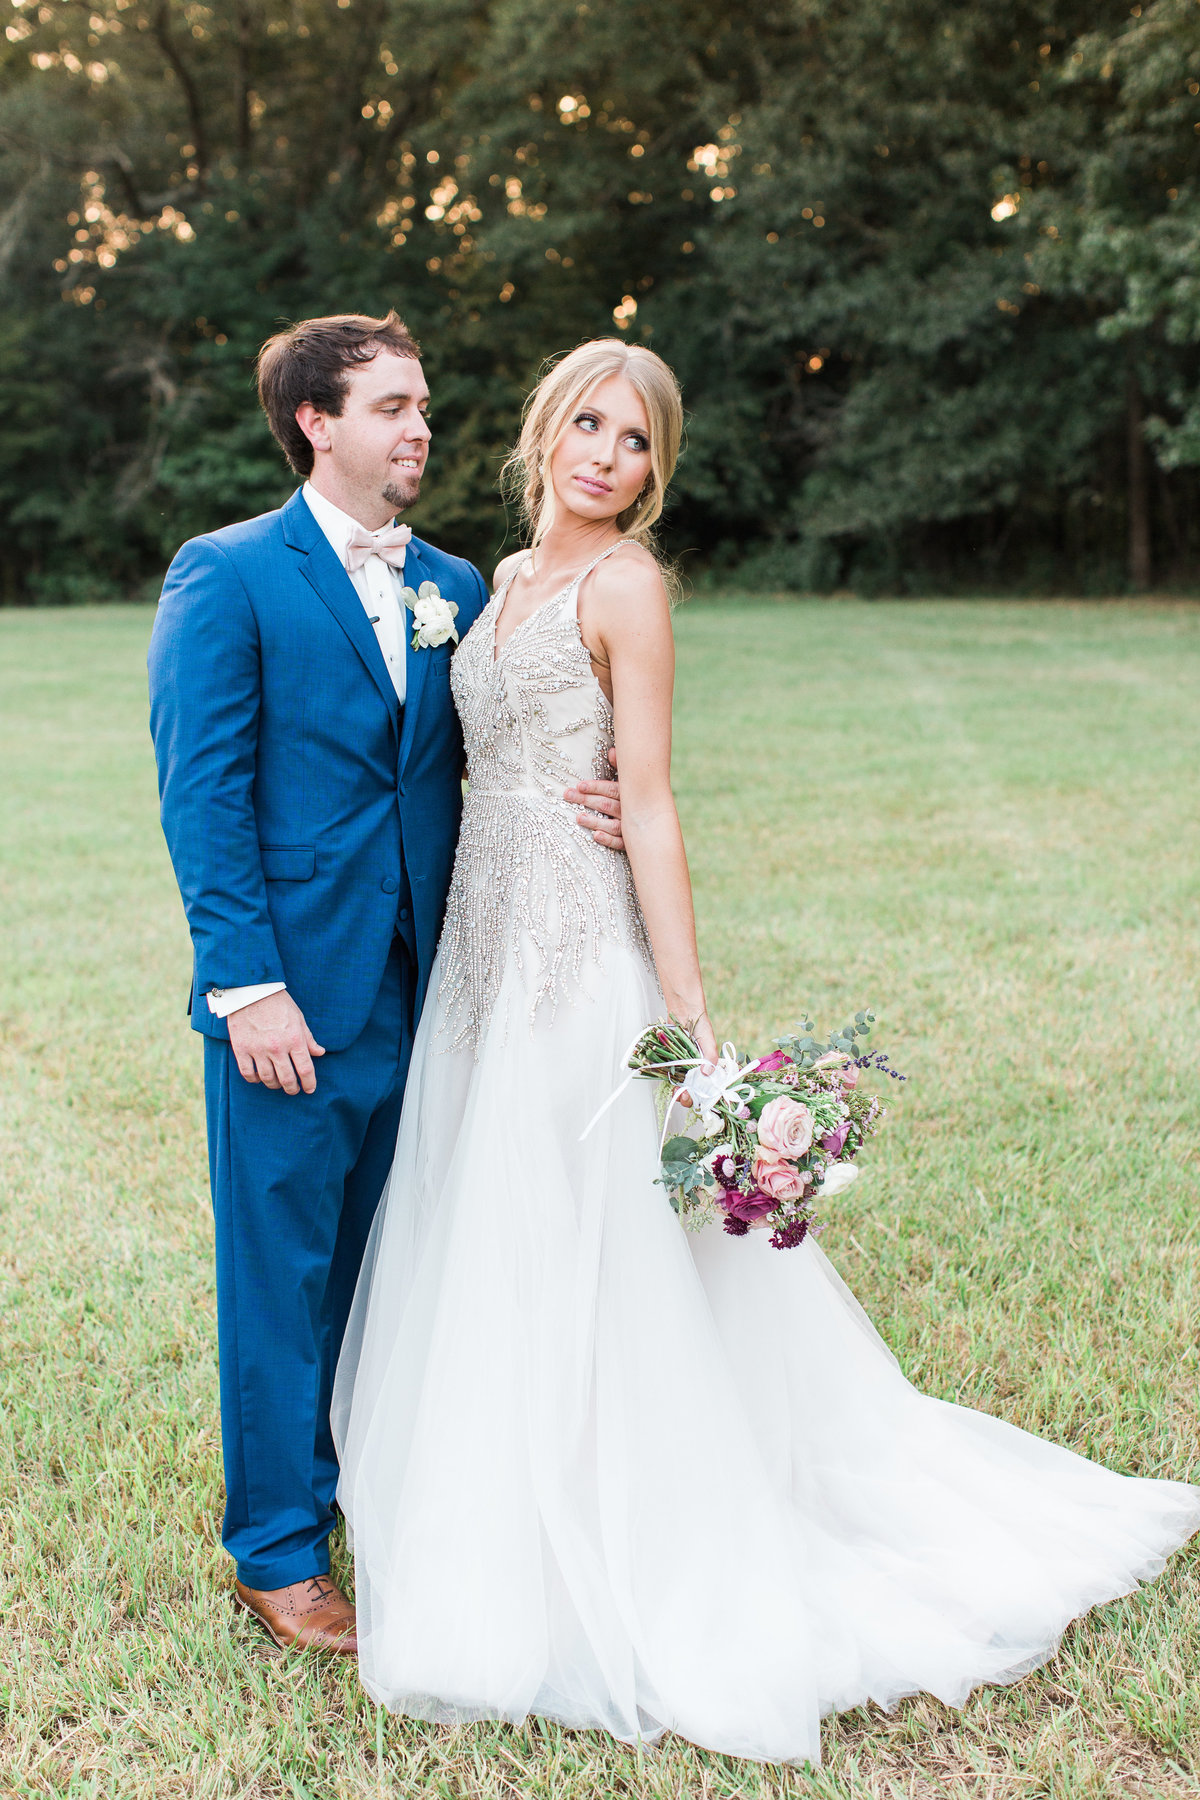 Eden & Will Wedding_Lindsay Ott Photography_Mississippi Wedding Photographer109